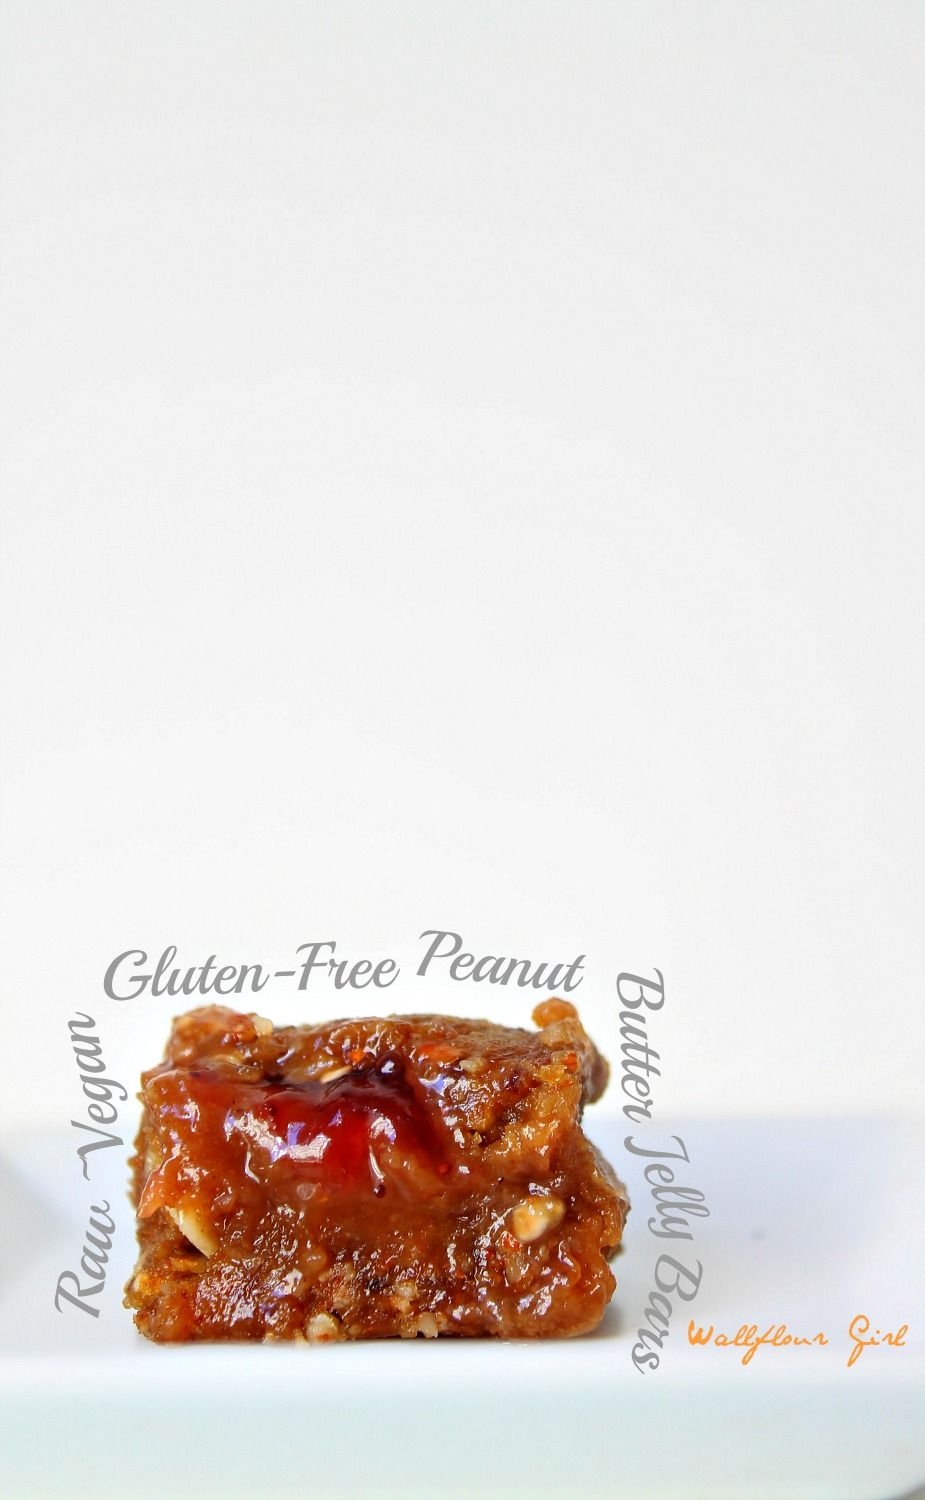 Healthy No-Bake Peanut Butter and Jelly Bars with some adjustments I can easily make these 90/10 friendly